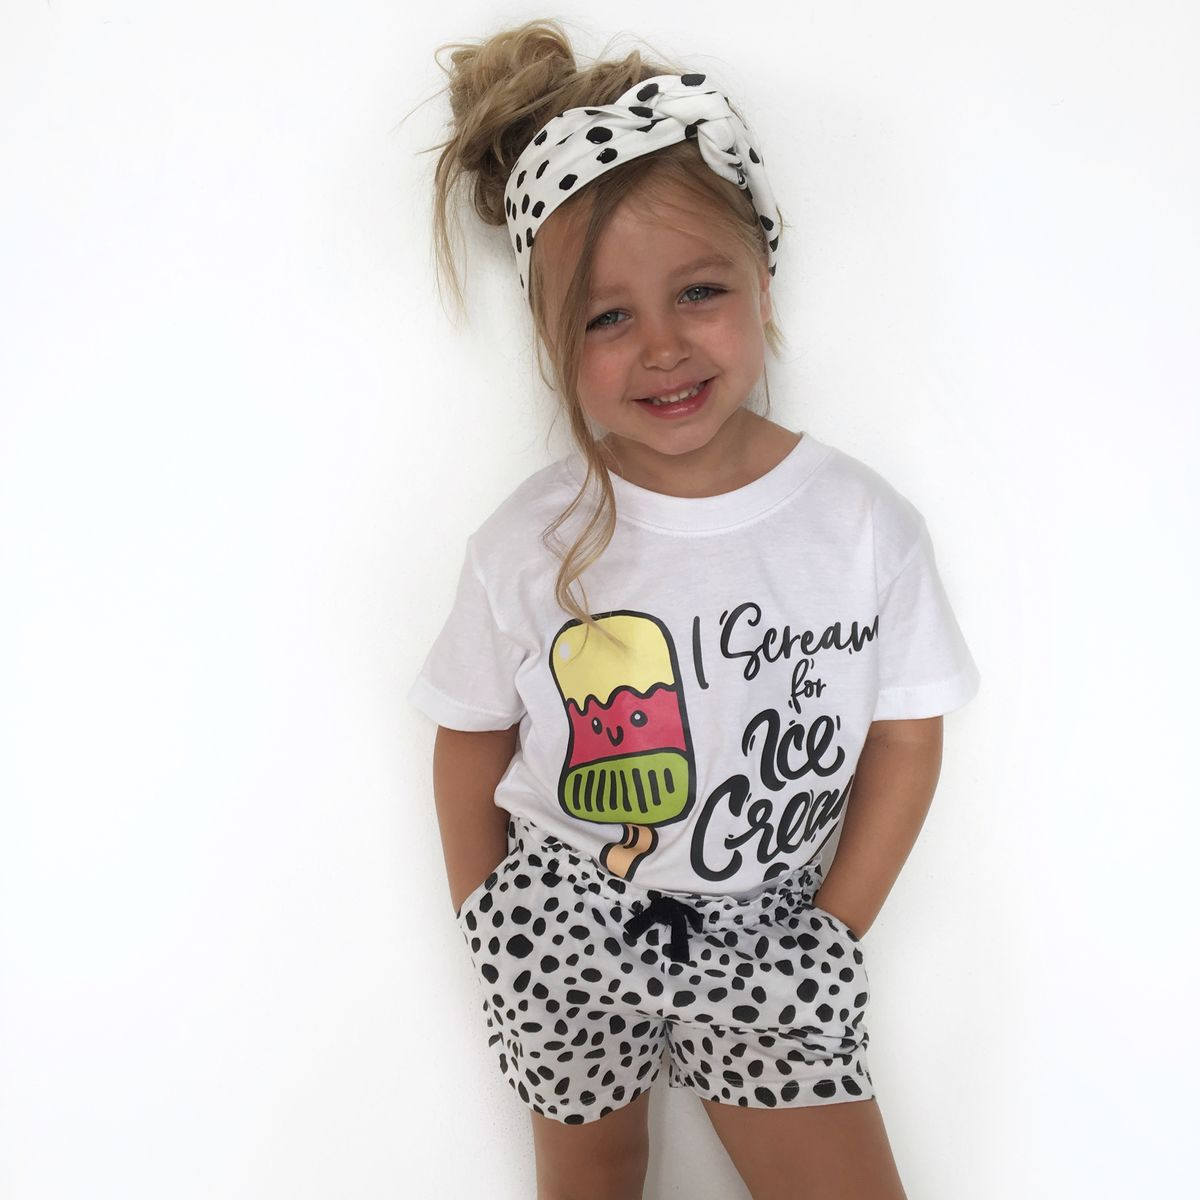 Scream for Ice Cream Black & White Kids T-Shirt (various sizes) - product images  of